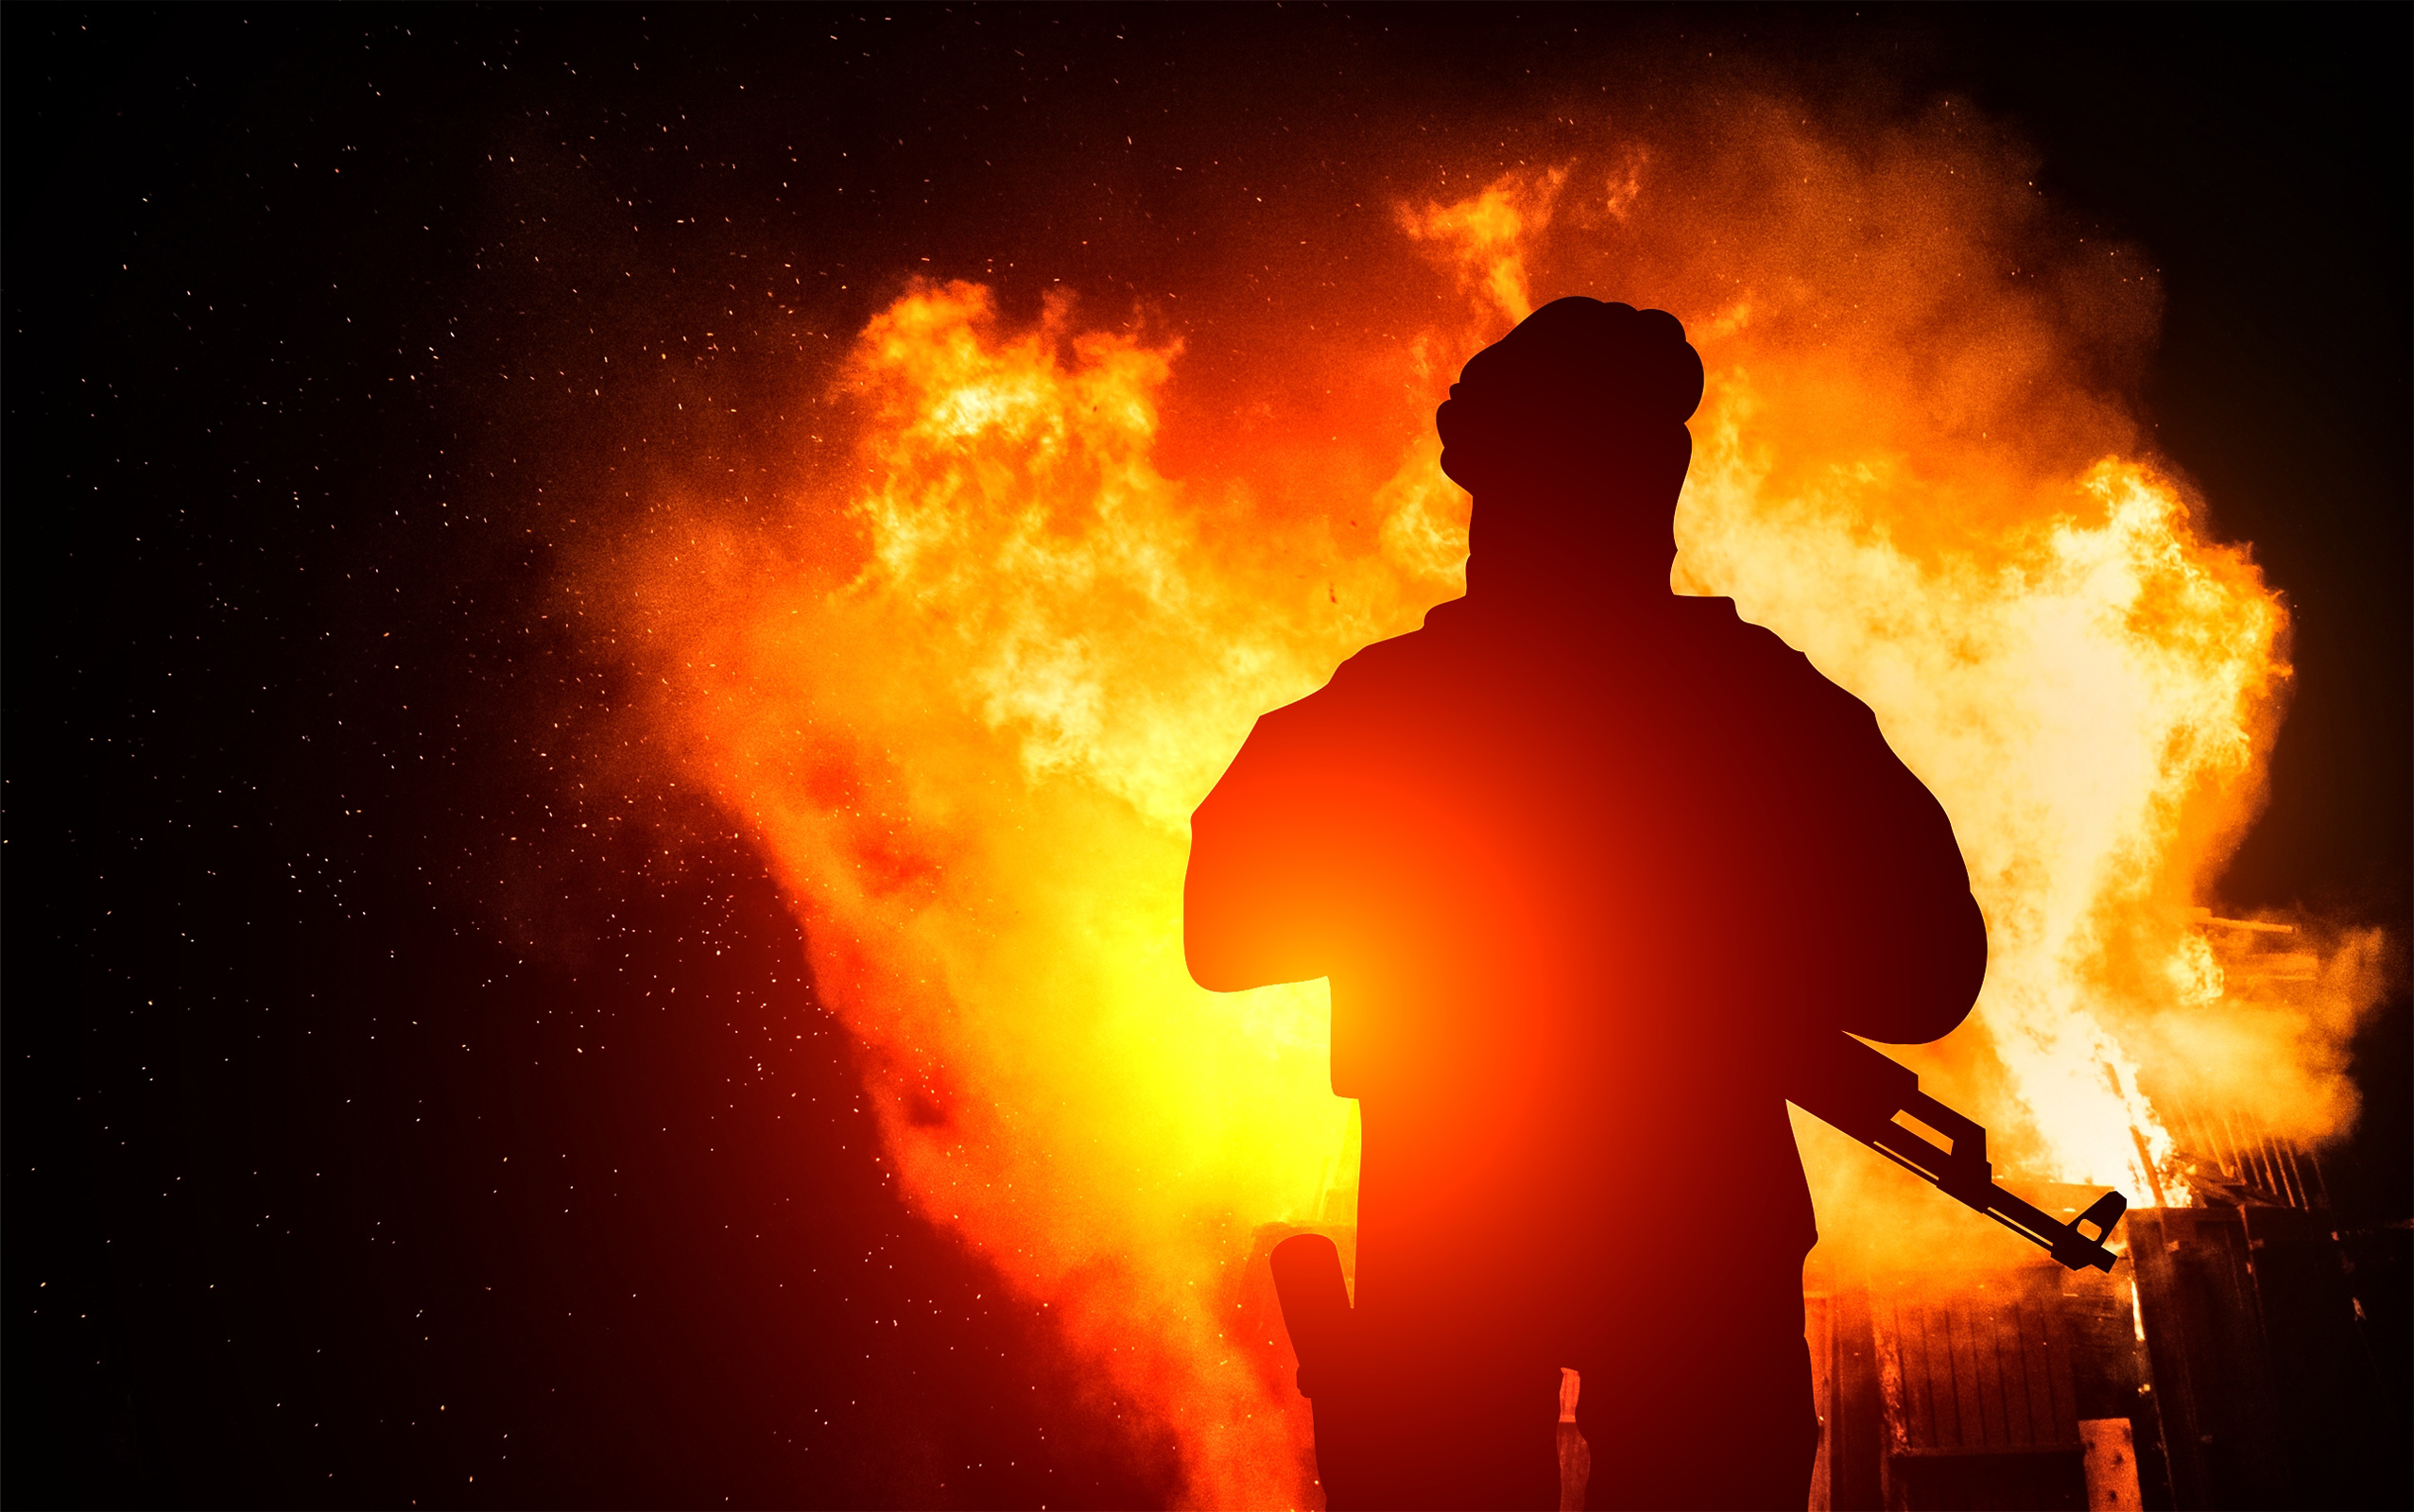 Armed Man with Background Explosion, Action, Protection, Safety, Ruins, HQ Photo